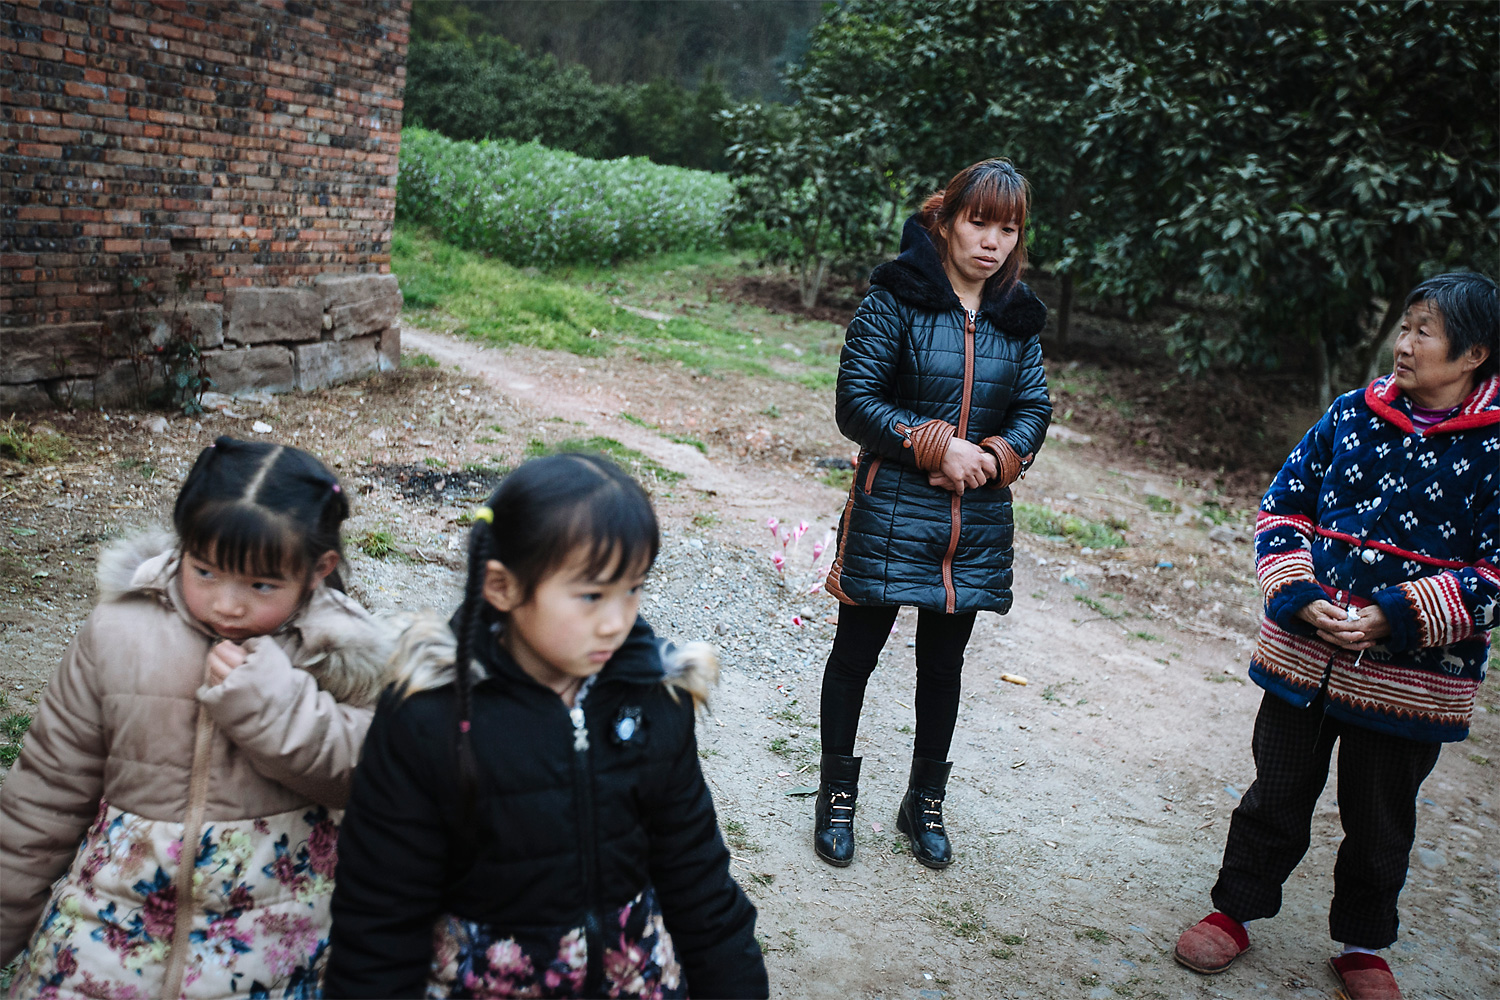 "Ning Xianfang talks to a neighbor in Longjing about the plan to sell one of her daughters, asking if she knows anyone who would want a daughter and would treat her well. One day, Xianfang says, her daughter Siyao came to her and cried, ""Don't sell me!"" But a few hours later she told her, ""You can sell me. I'm the older one… I should be able to take care of myself. Just don't forget to buy me back when dad is cured and you have money."""